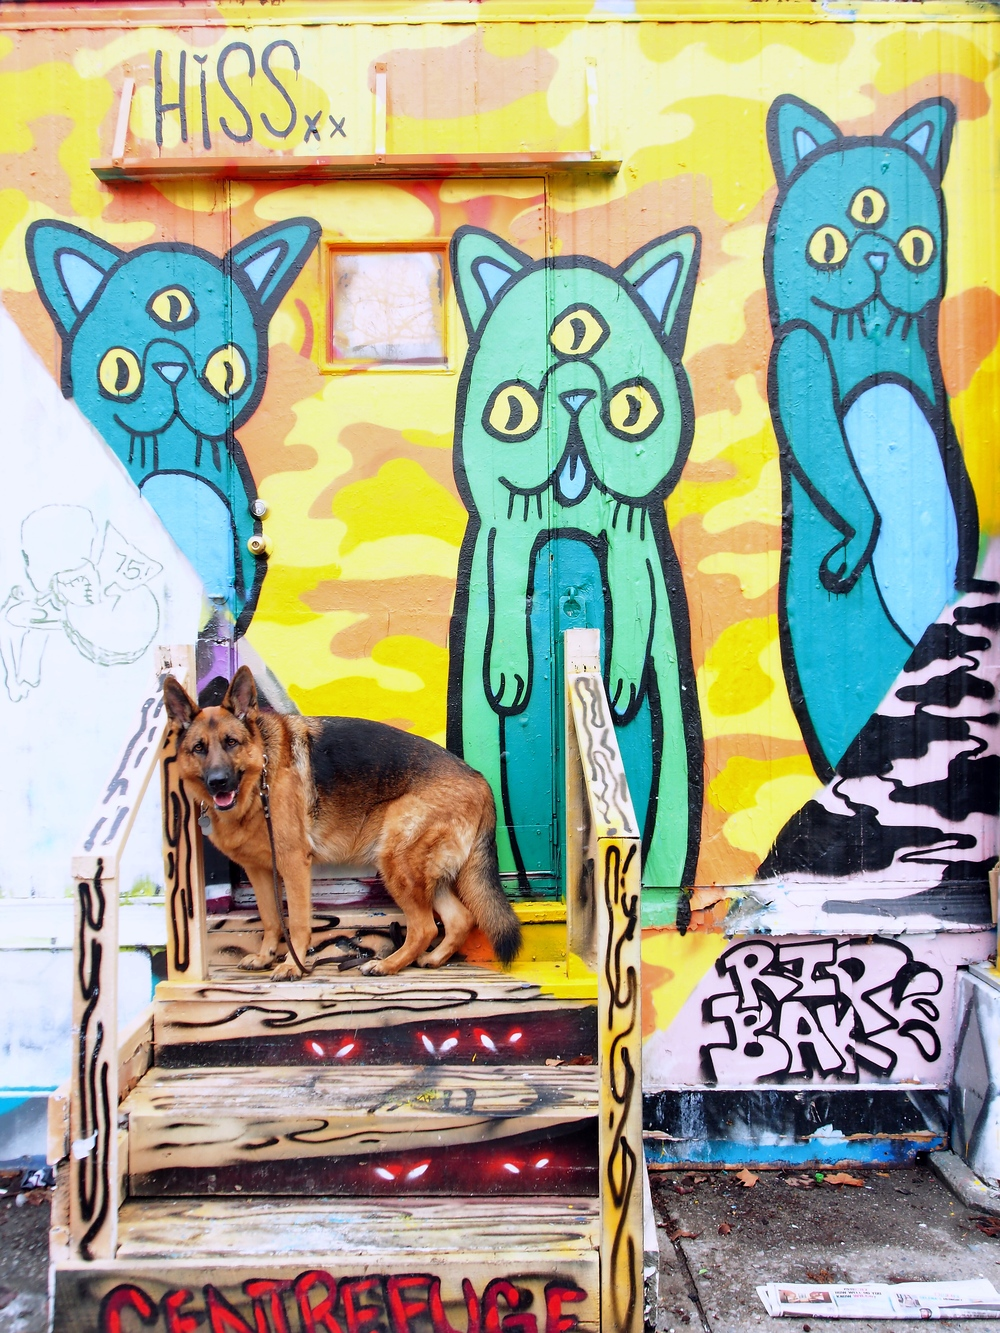 Centre-fuge Public Art Project with  Hissxx's  kitty cats & MaQ!